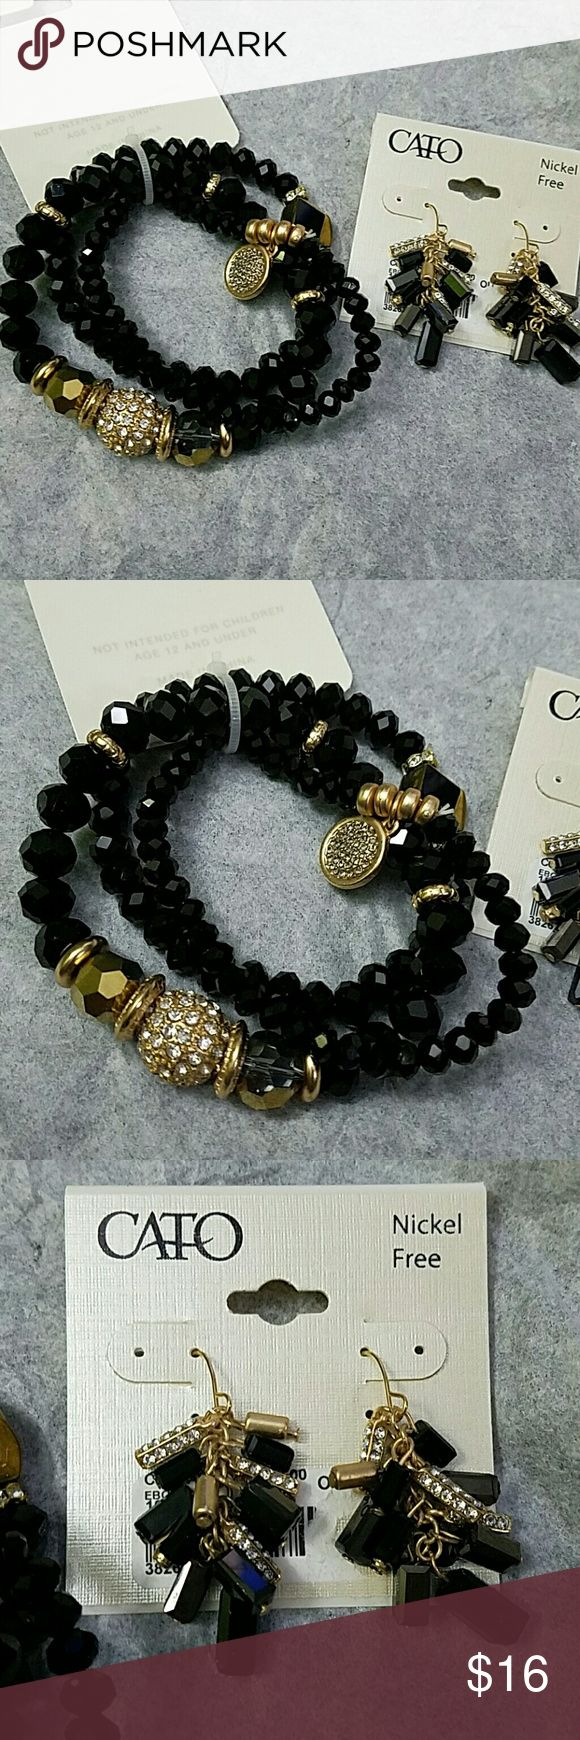 Bracelet and Earrings Matching Set Was for Prom... she changed her mind!!  Mommy is stuck.  Just hoping to get money back because we lost receipt.  Black with gokd and sparkle.  Very pretty.  Firm on price please. Cato Jewelry